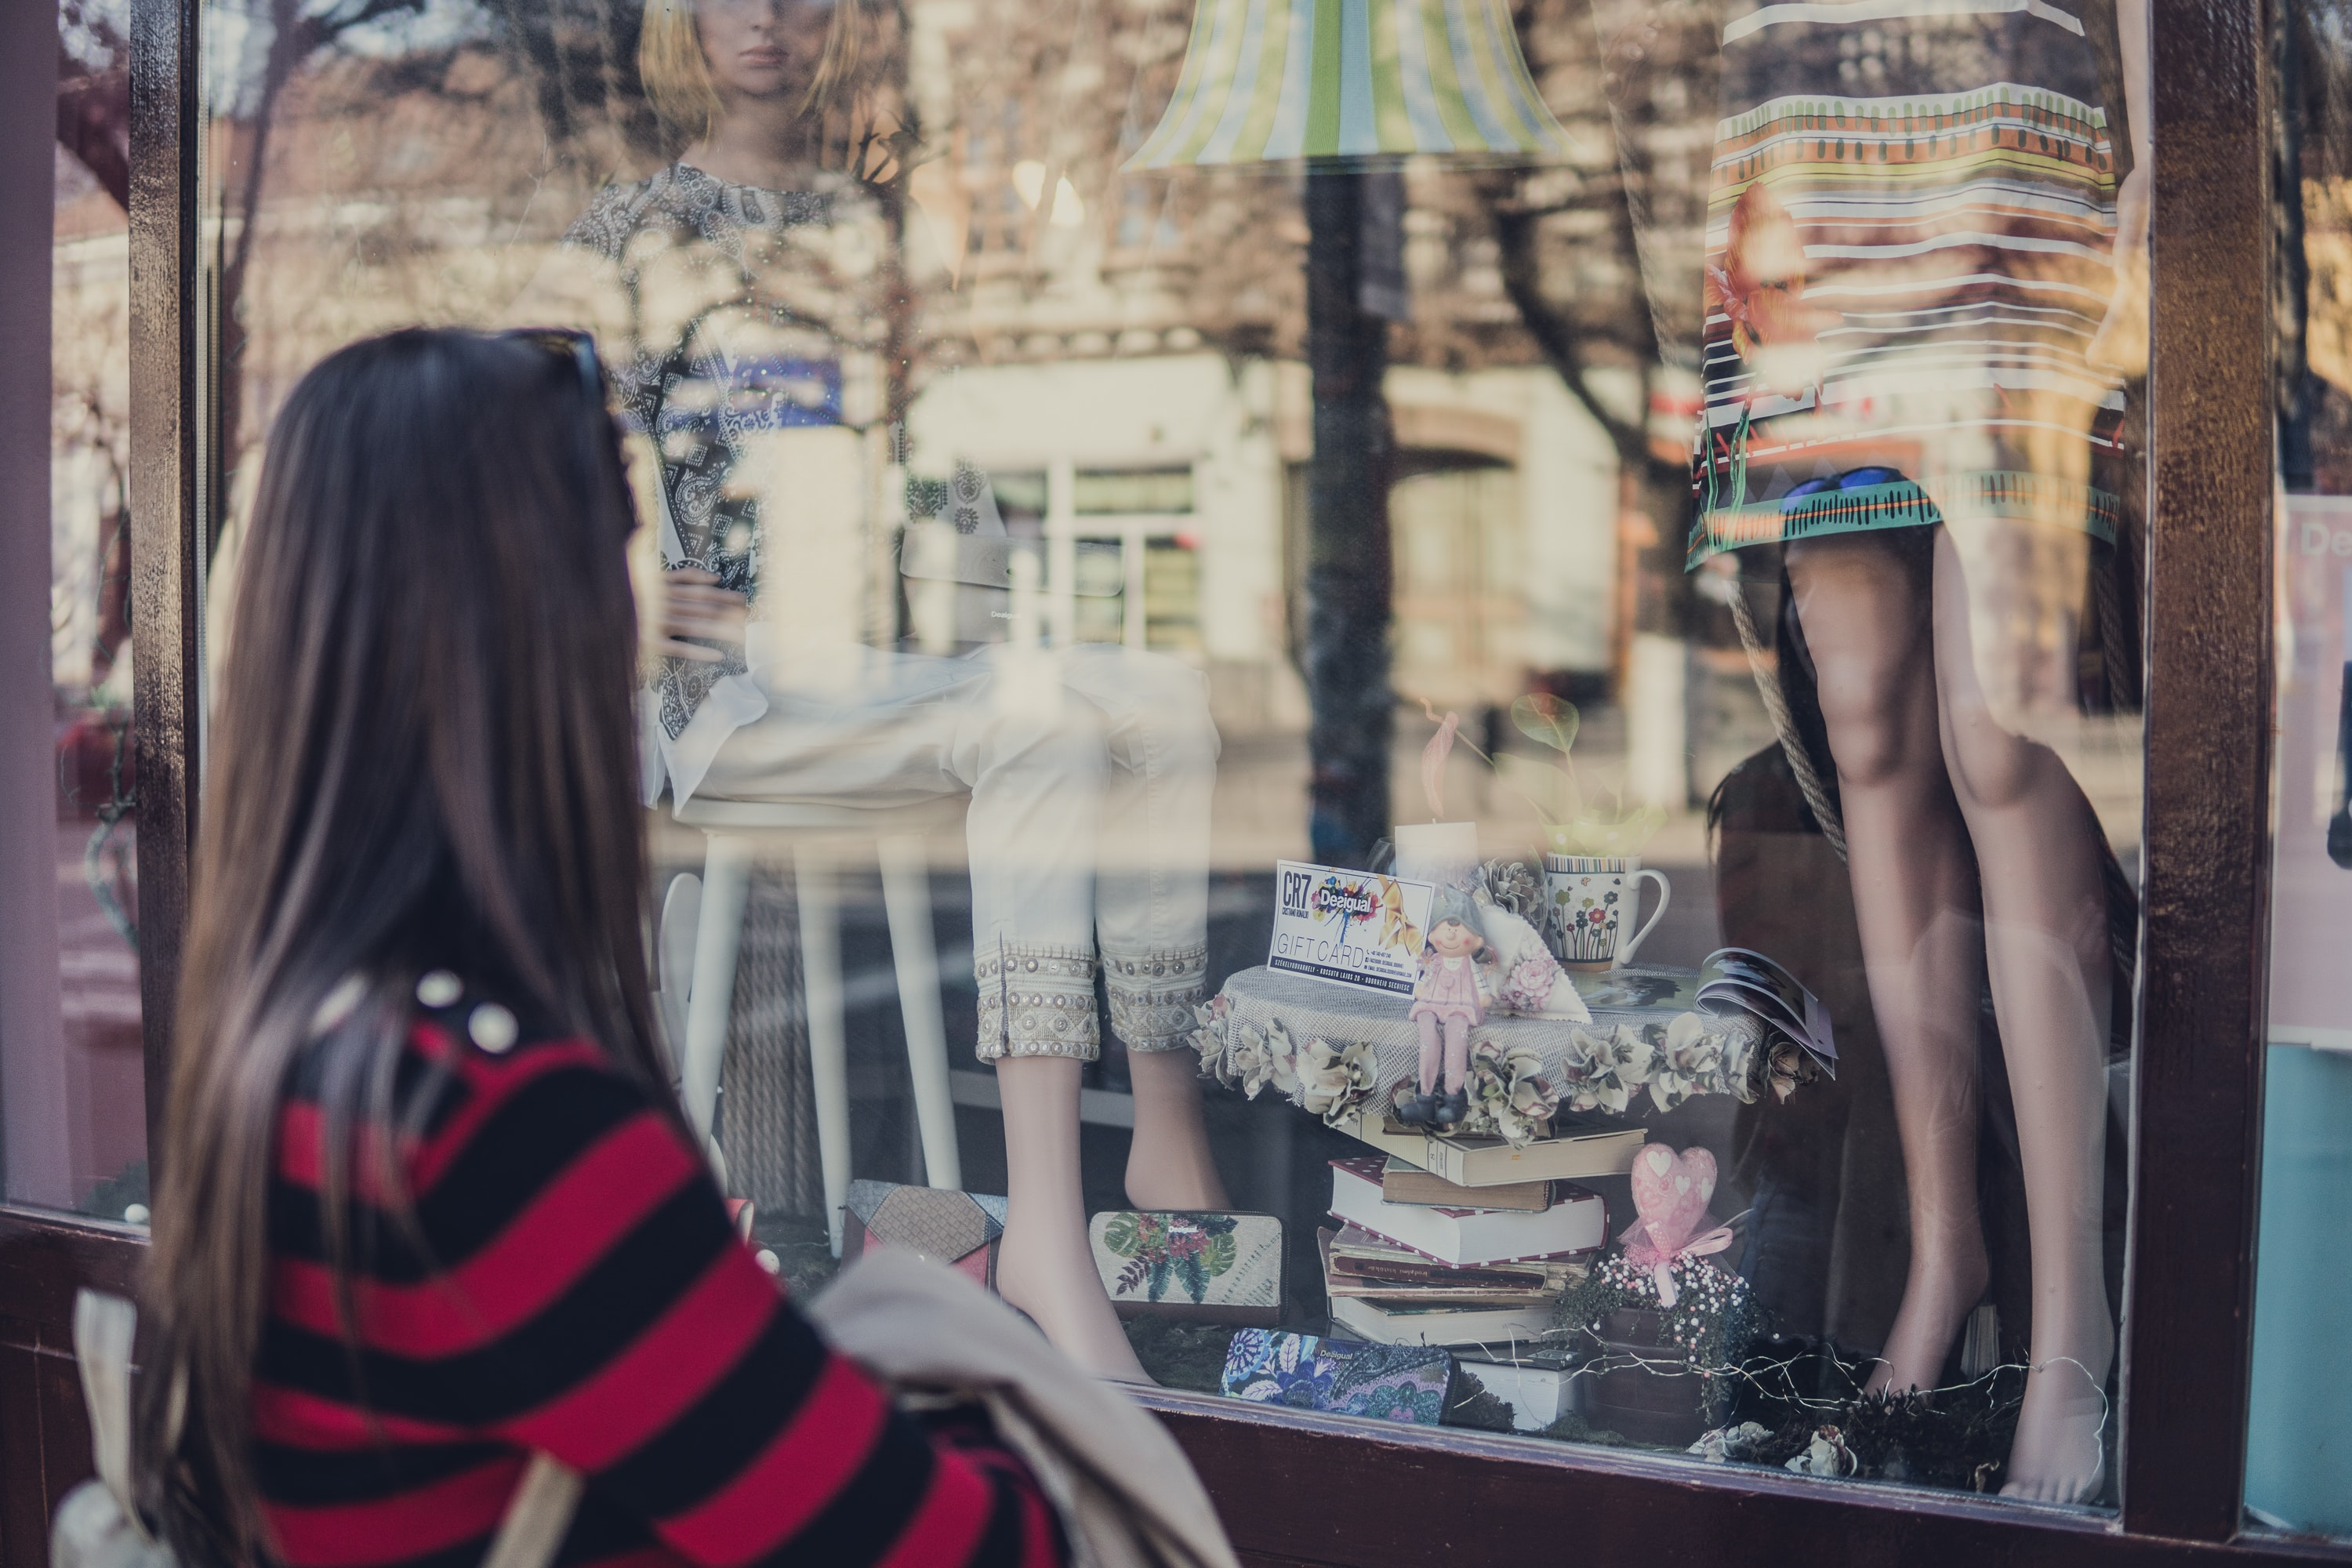 A woman looking at mannequins in a storefront